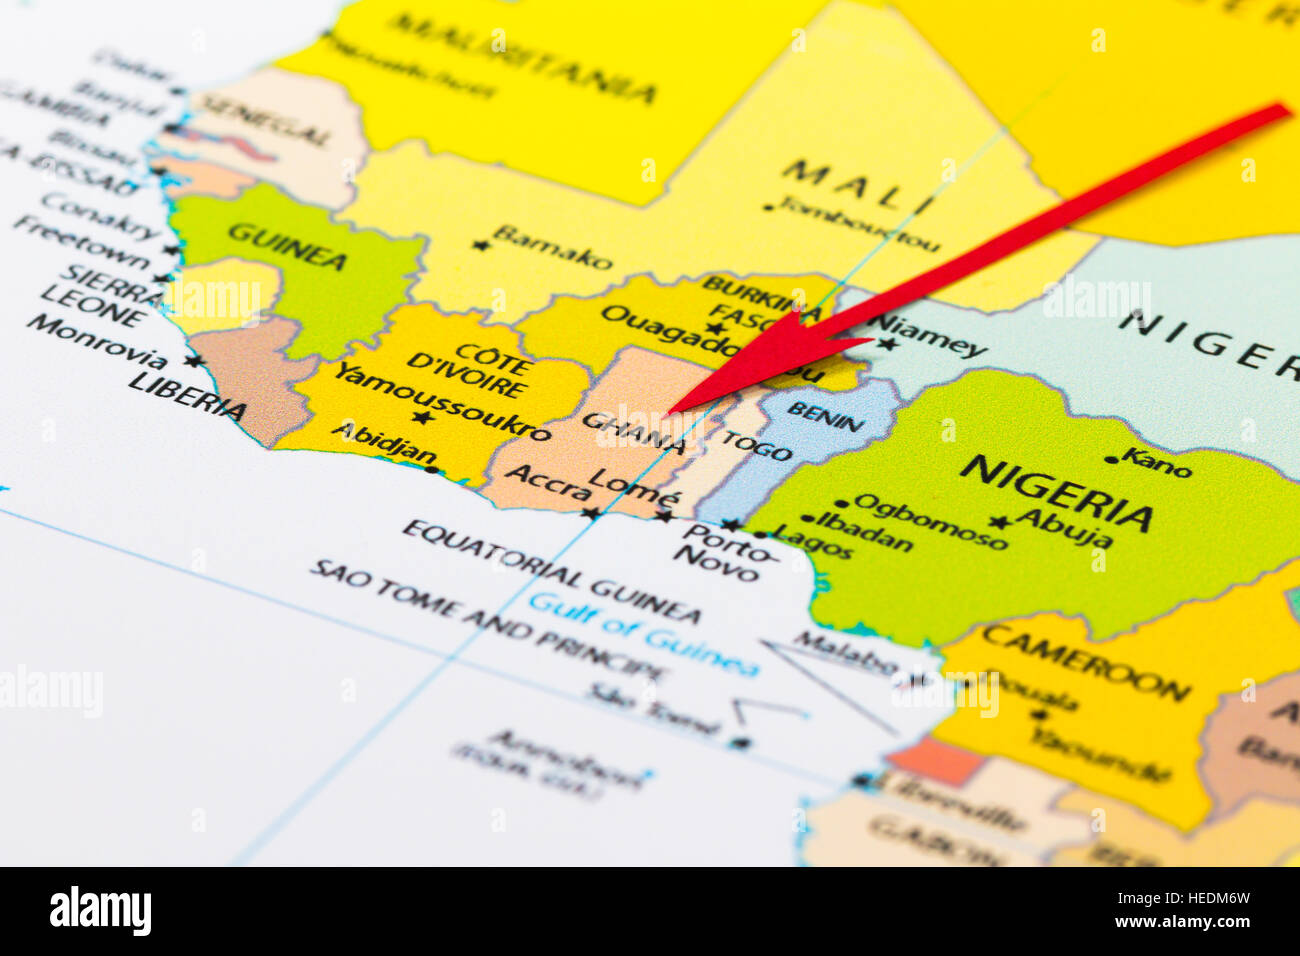 Red arrow pointing Ghana on the map of Africa continent ... on mauritania on map, nepal on map, guatemala on map, west africa map, borneo on map, egypt on map, belize on map, mali on map, madagascar on map, liberia on map, hungary on map, brazil on map, cuba on map, benin on map, zimbabwe on map, italy on map, indonesia on map, the gambia on map, nigeria on map, thailand on map,